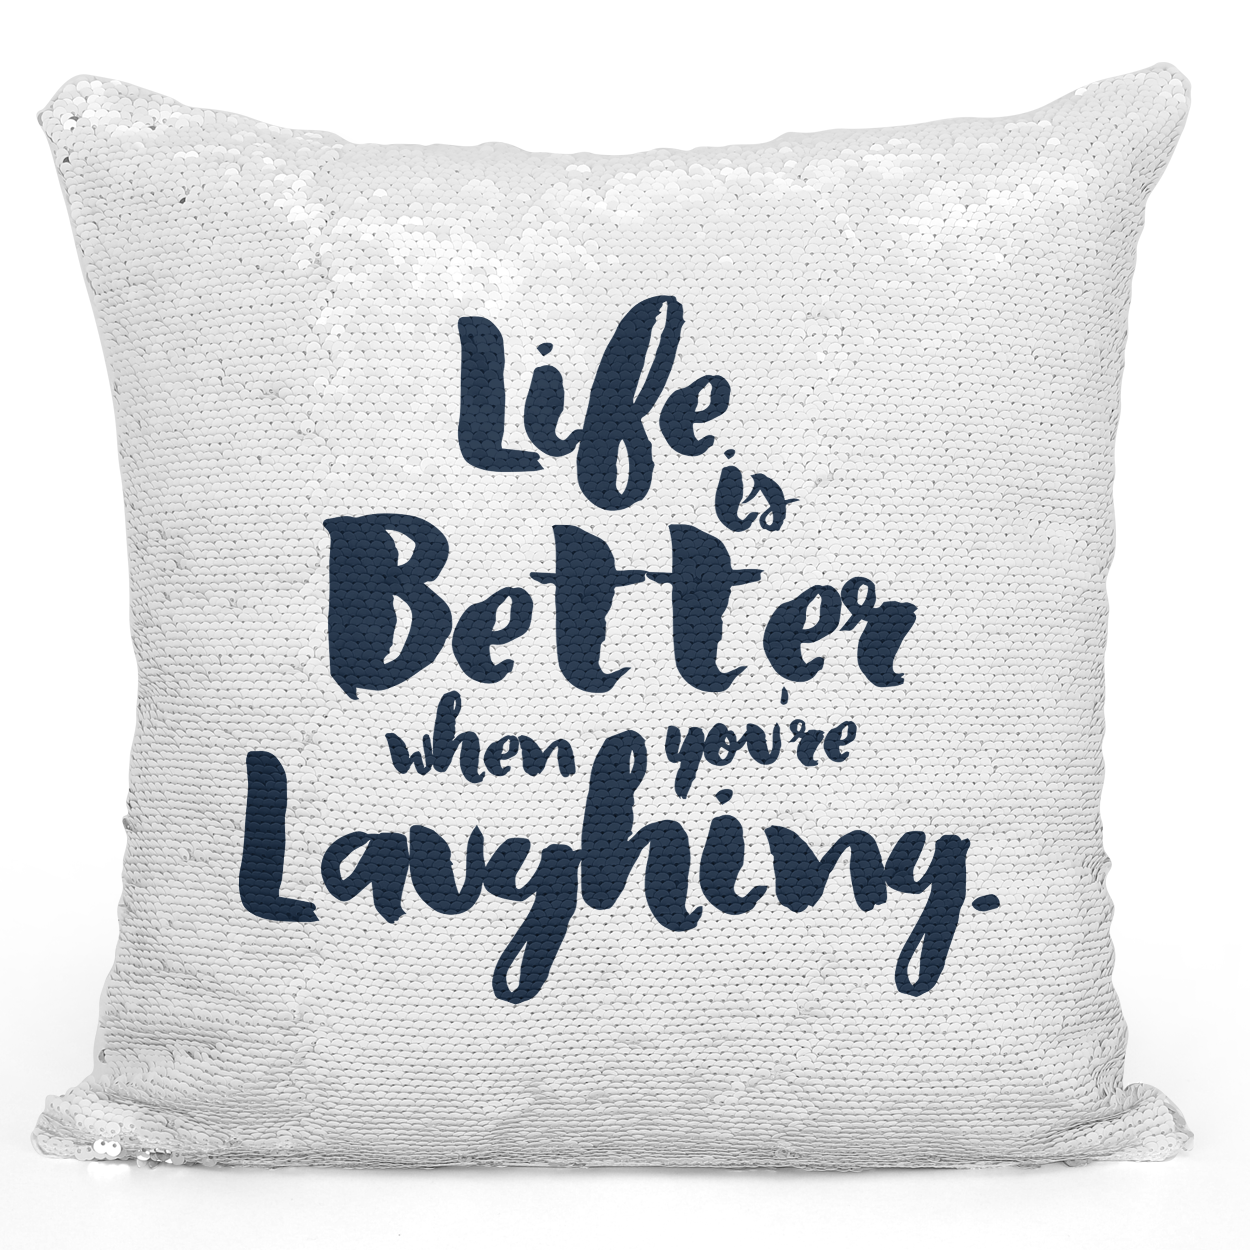 16x16 inch Sequin Throw Pillow Magic Flip Pillow Life Is Better When You Laughing Inspire Youth Pillow Loud Universe